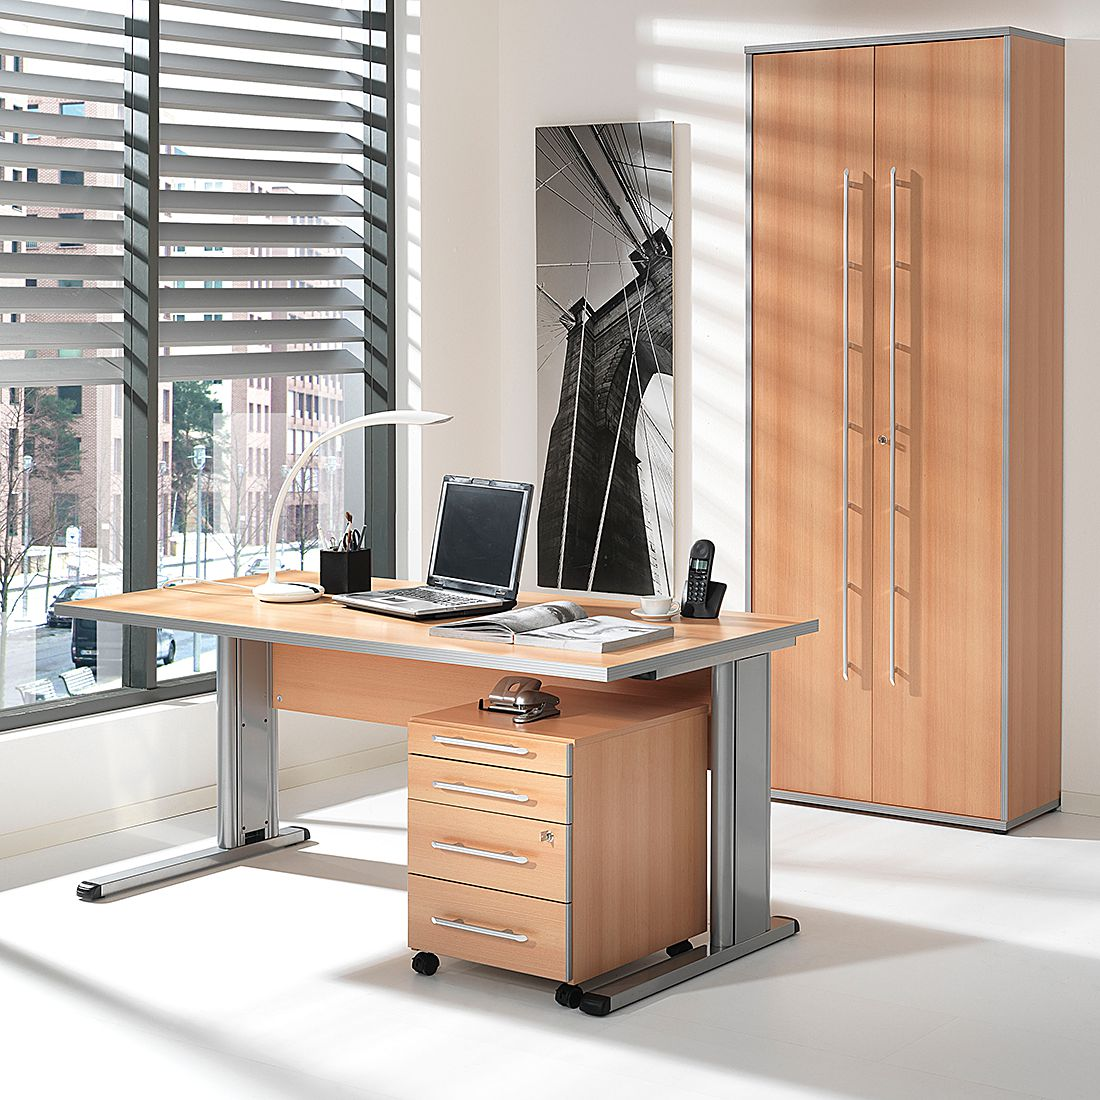 Home 24 - Ensemble de bureau kirk volts (3 éléments) - imitation hêtre, wellemöbel